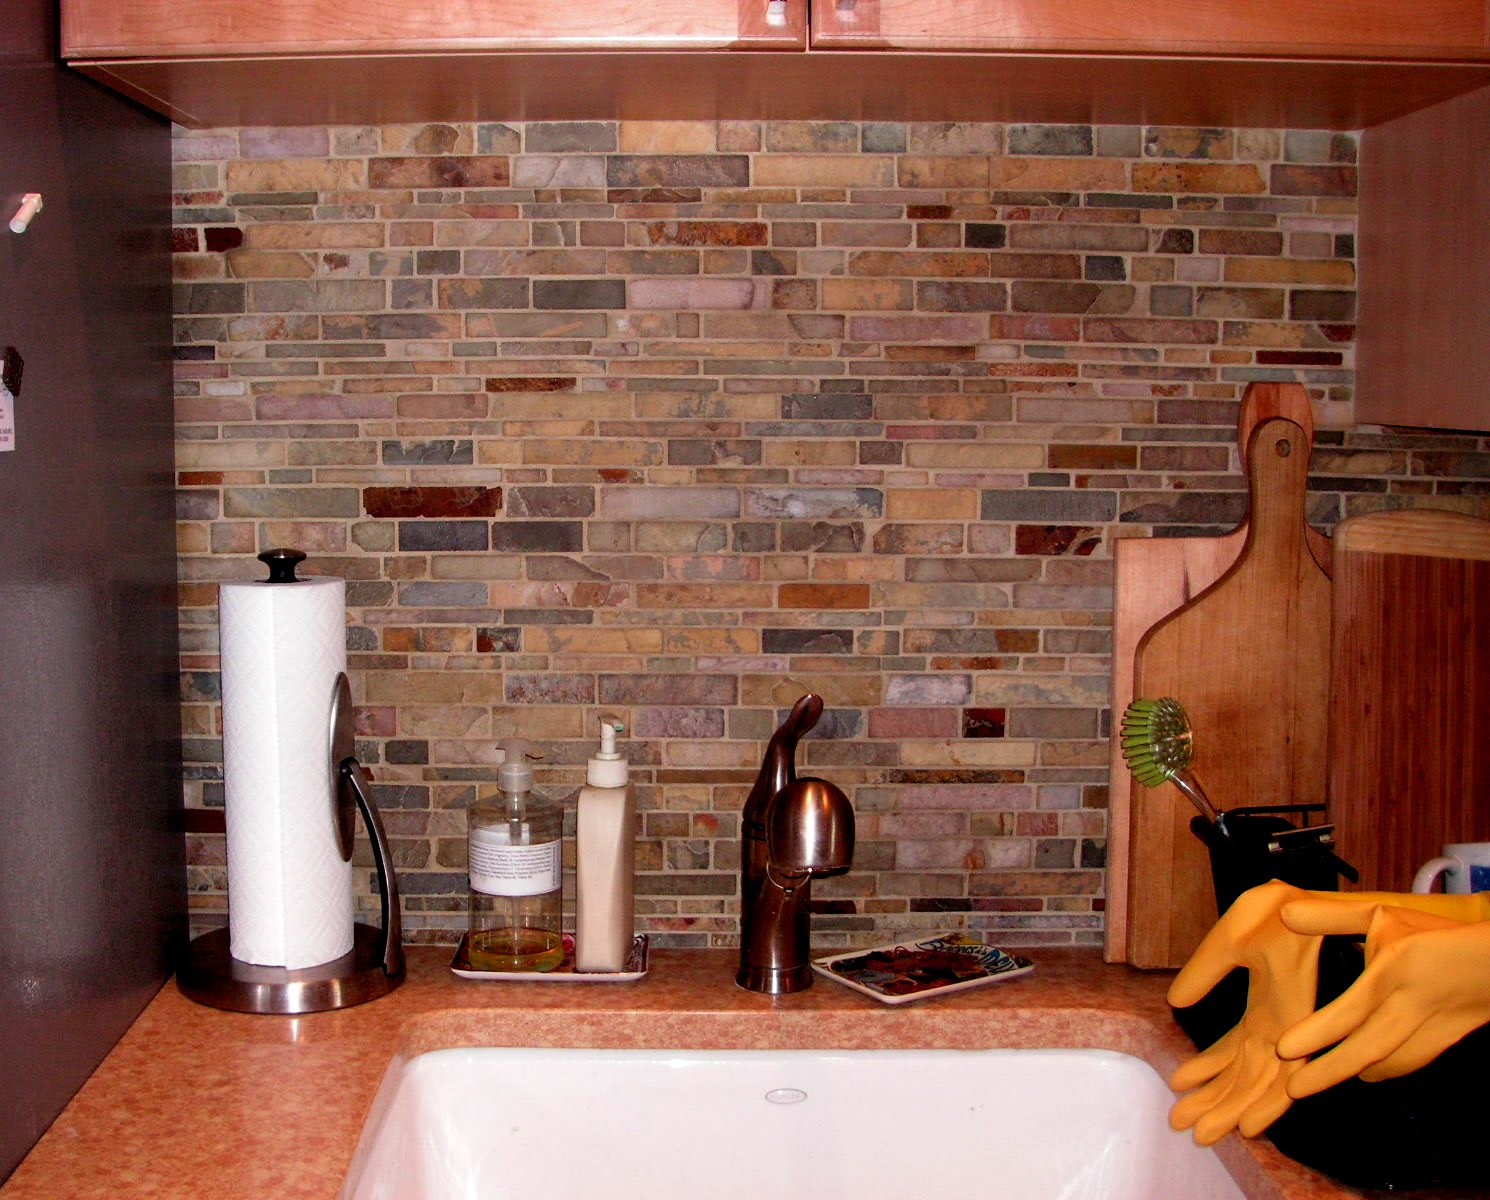 color forte july 2010 grouting slate tile backsplash images